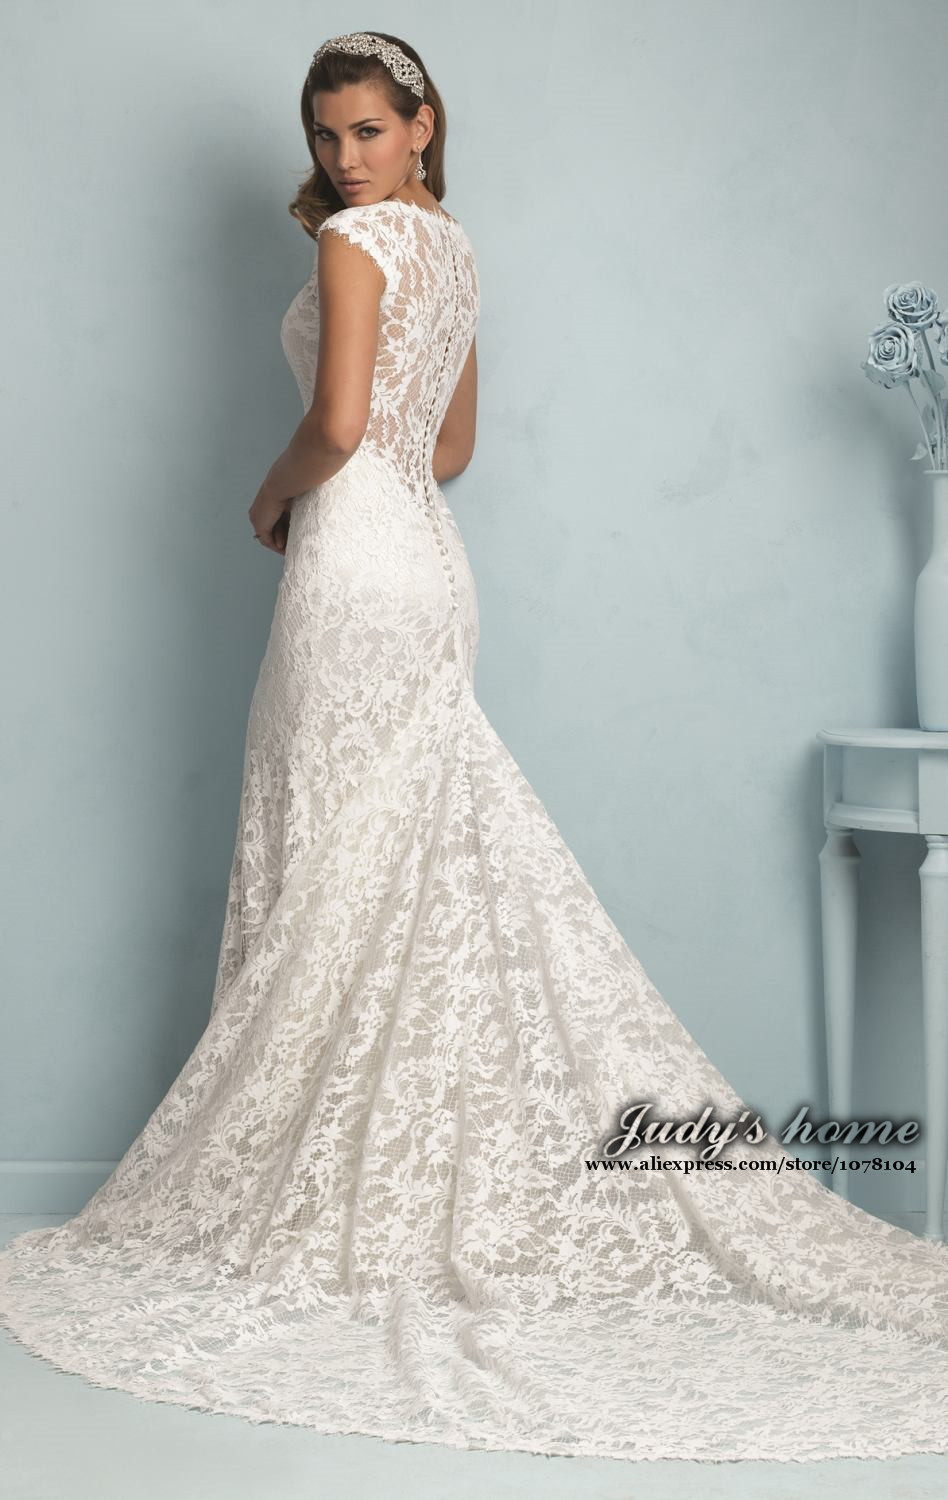 Wedding Dress Empire Waist - Lace Wedding Dress Online - Ledcornlight.co